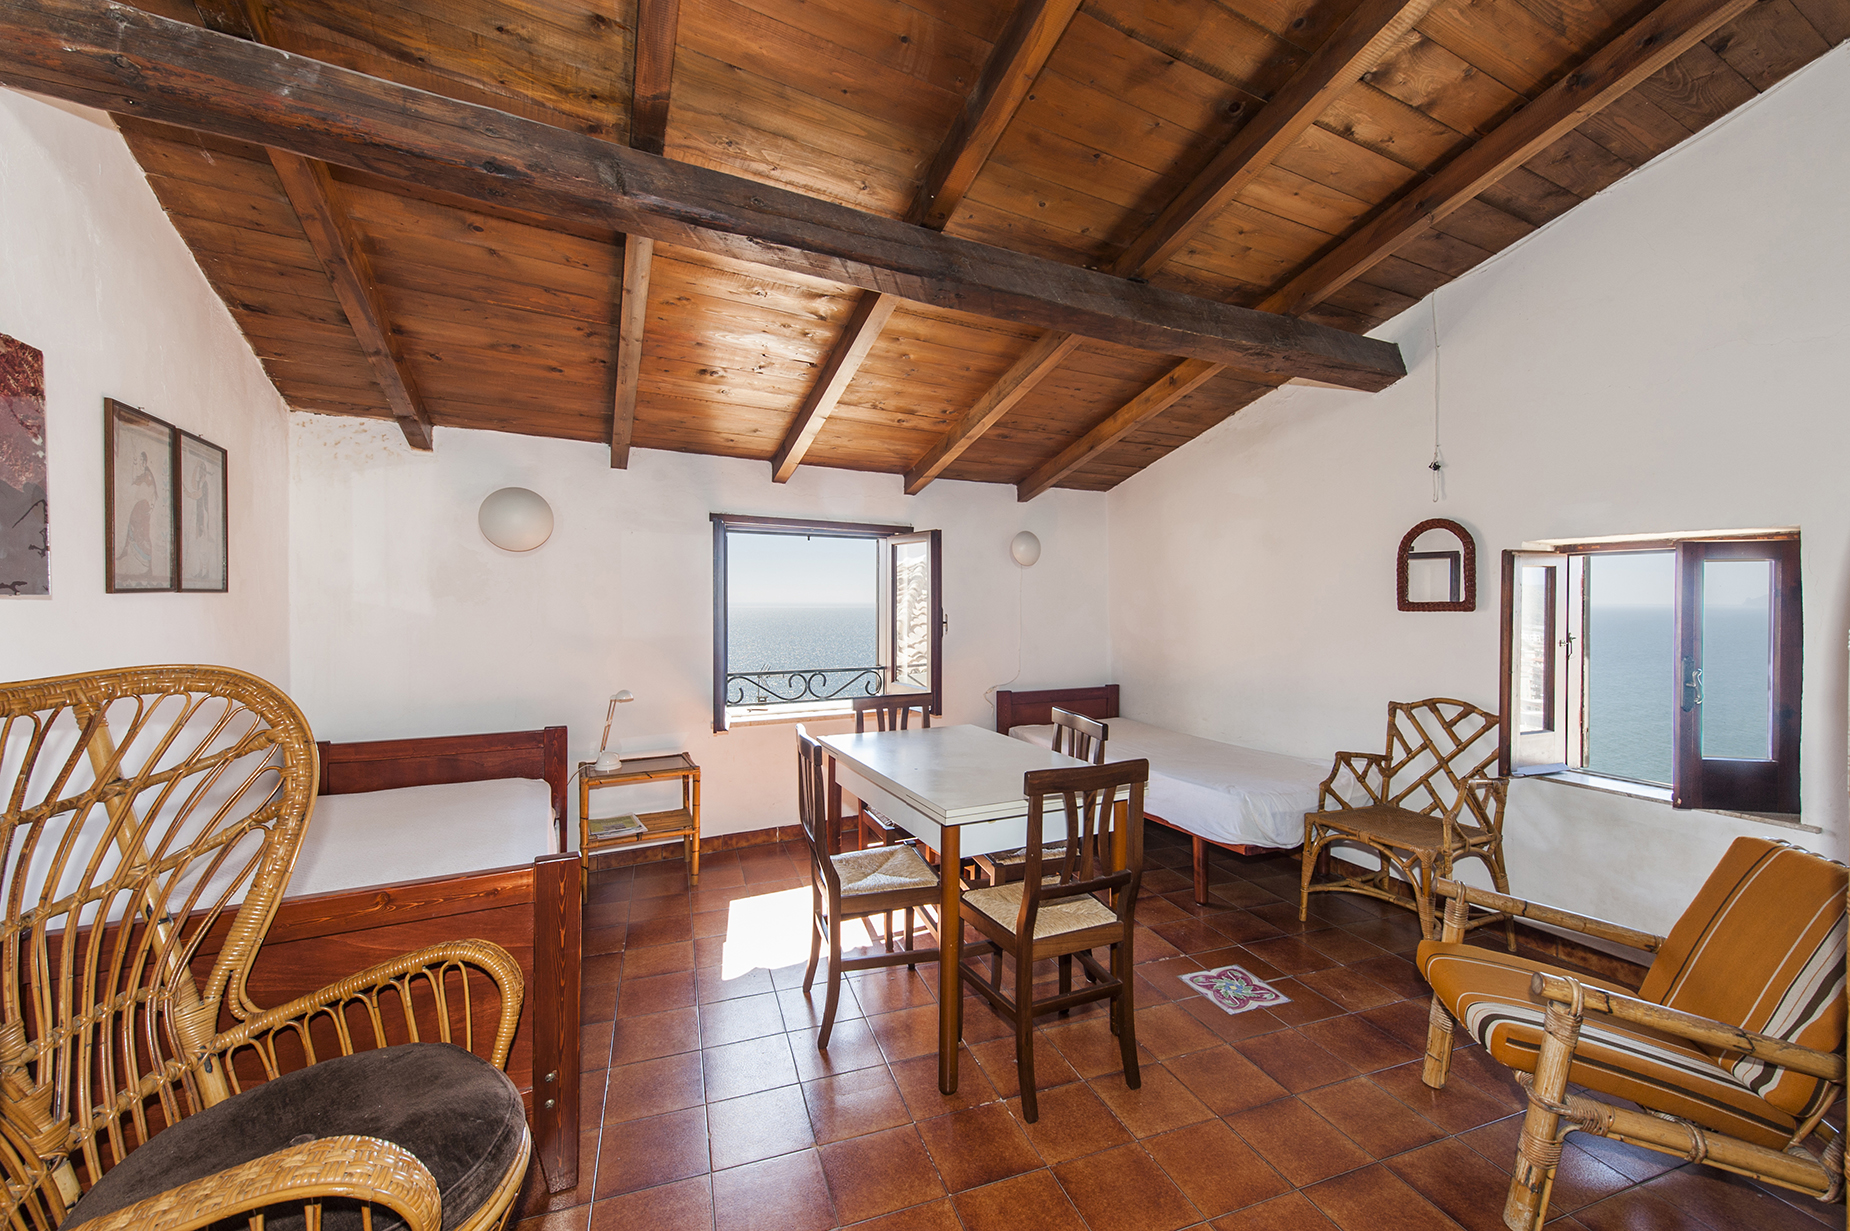 Apartamento por un Venta en Charming apartment in Sperlonga with panoramic sea view Via Giosa Sperlonga, Latina 04029 Italia